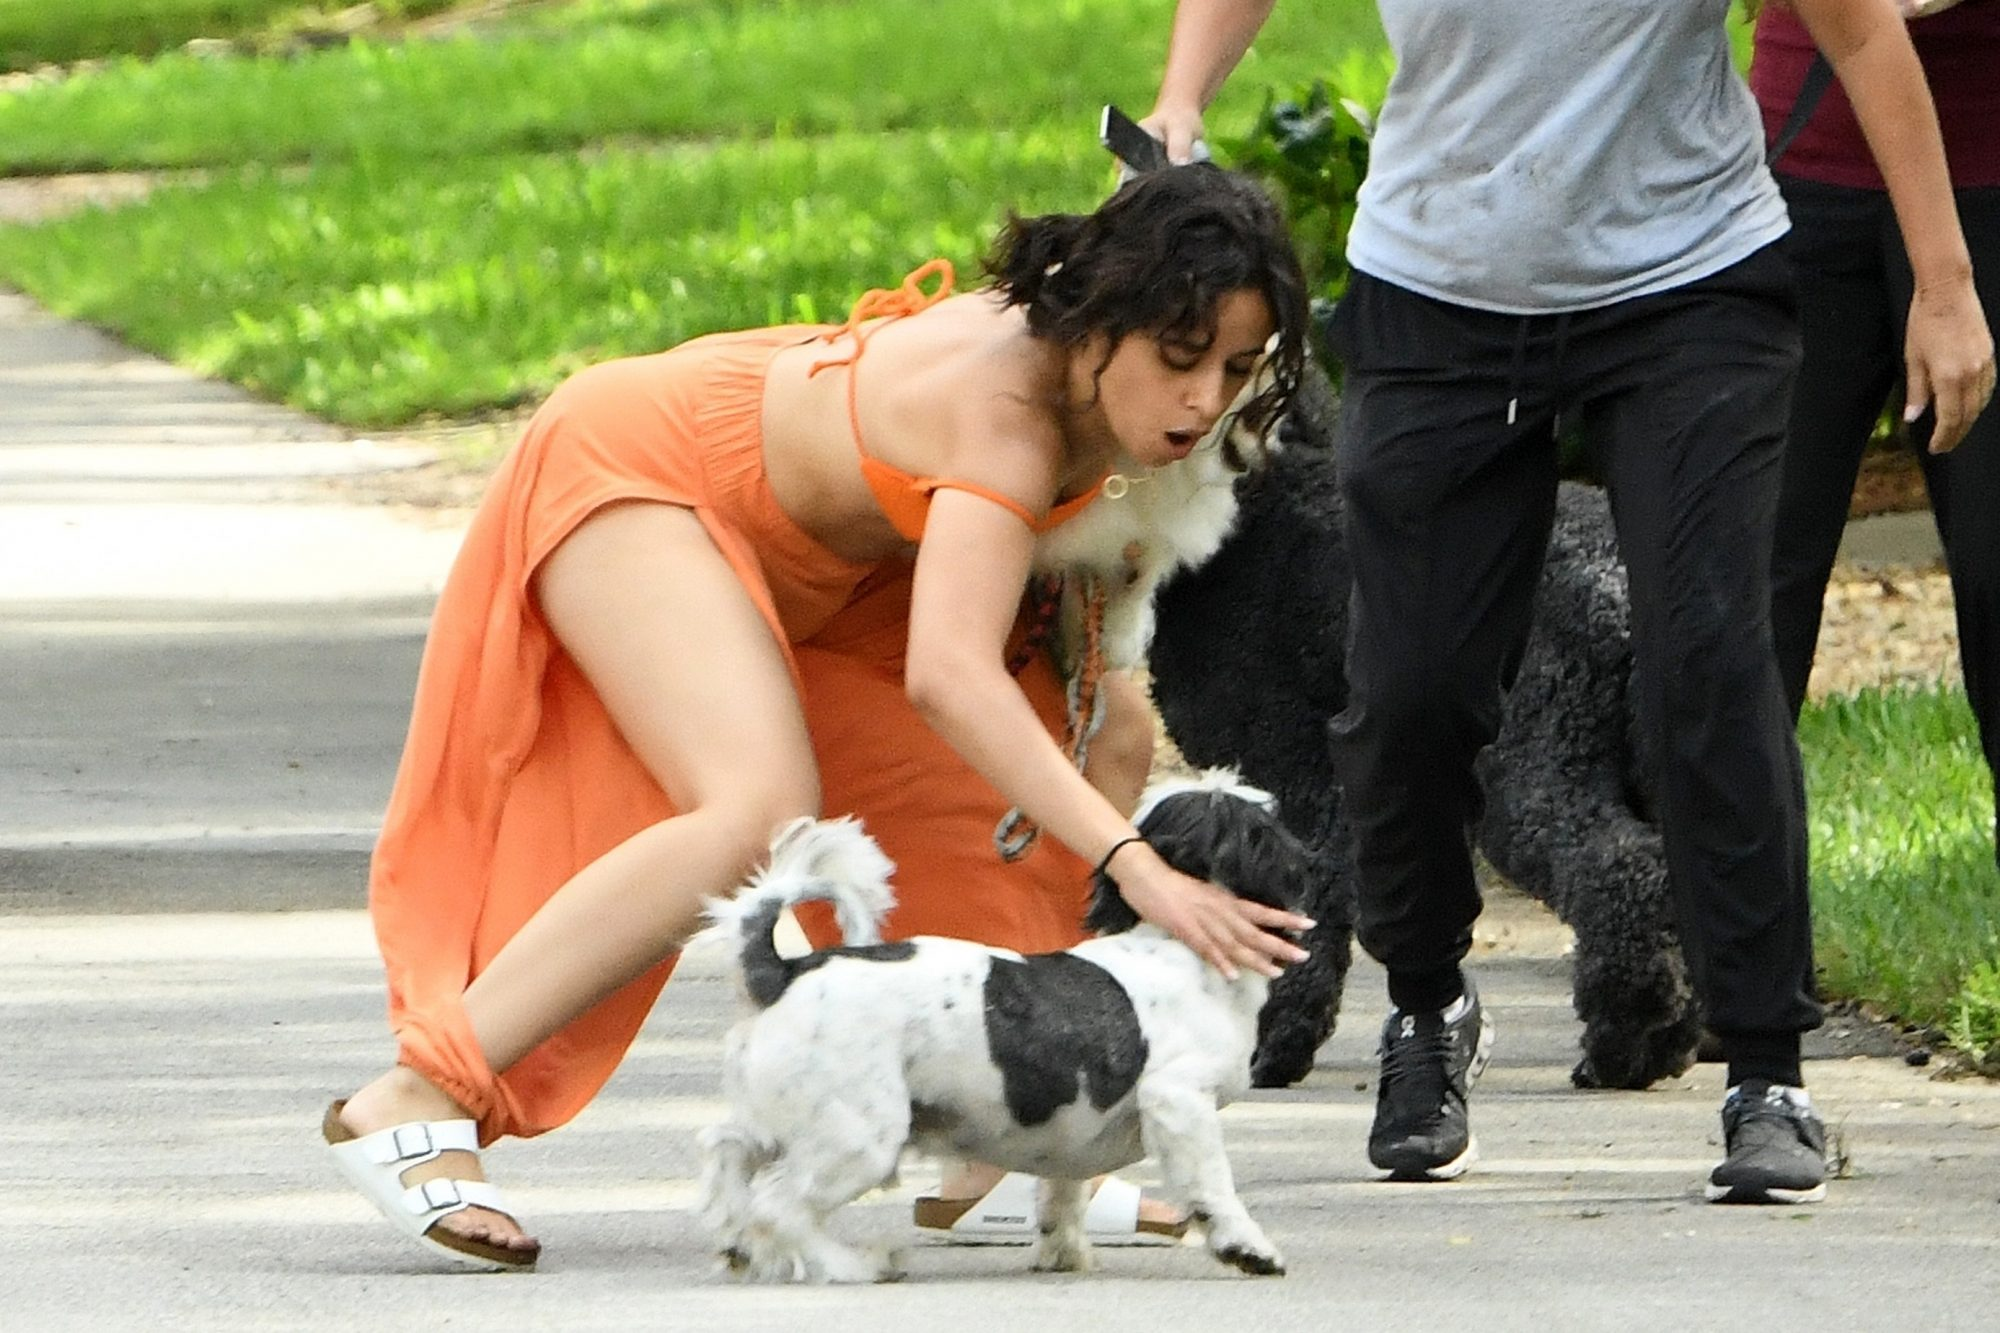 Camila Cabello & Shawn Mendes Struggle with their Dogs on a Walk